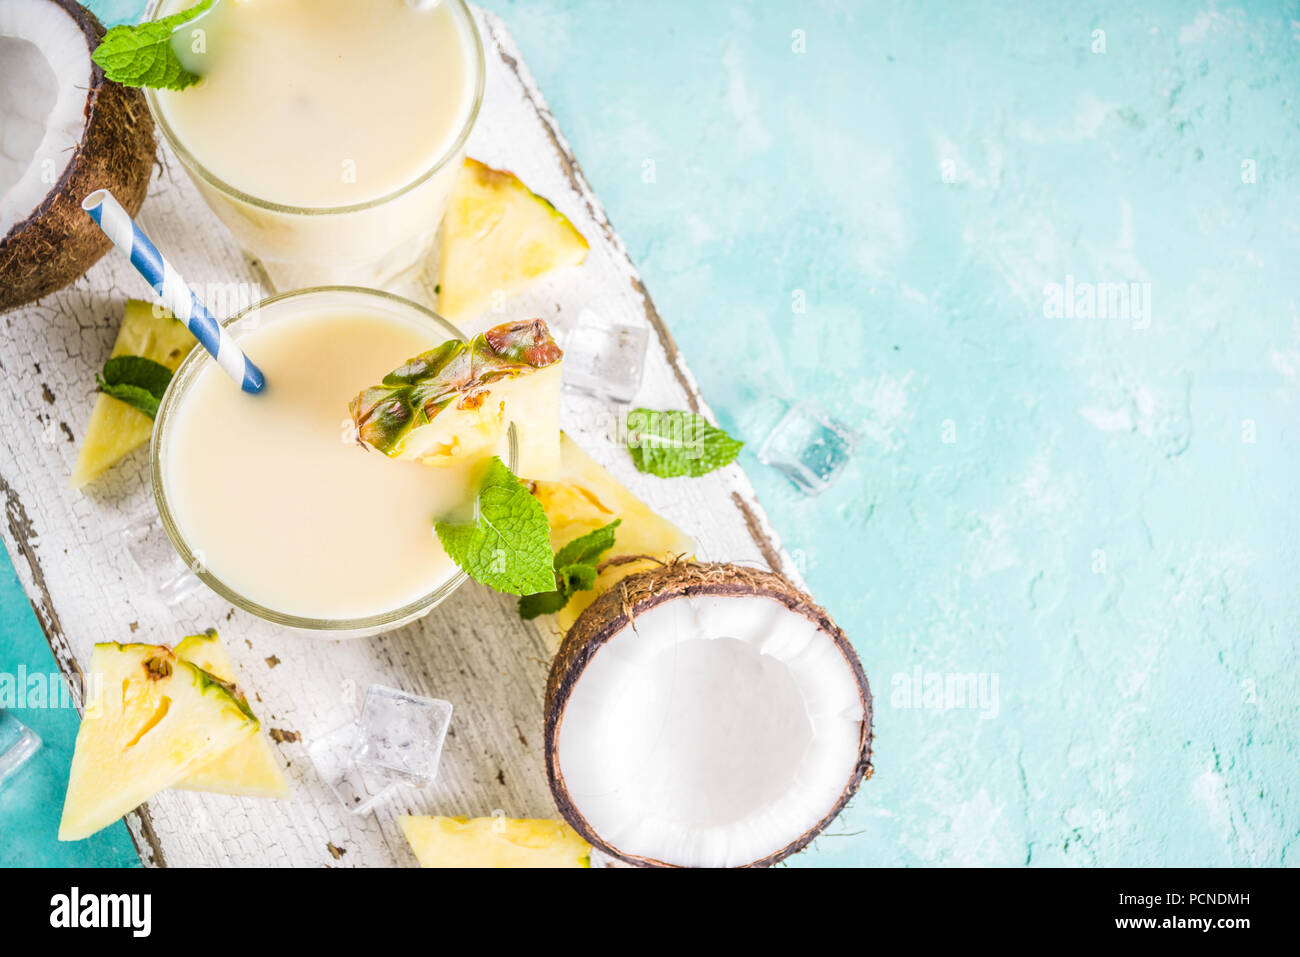 Refreshing summer drink, homemade pina colada cocktail, on a light blue background, with pieces of pineapple, coconut, ice and mint leaves, copy space - Stock Image